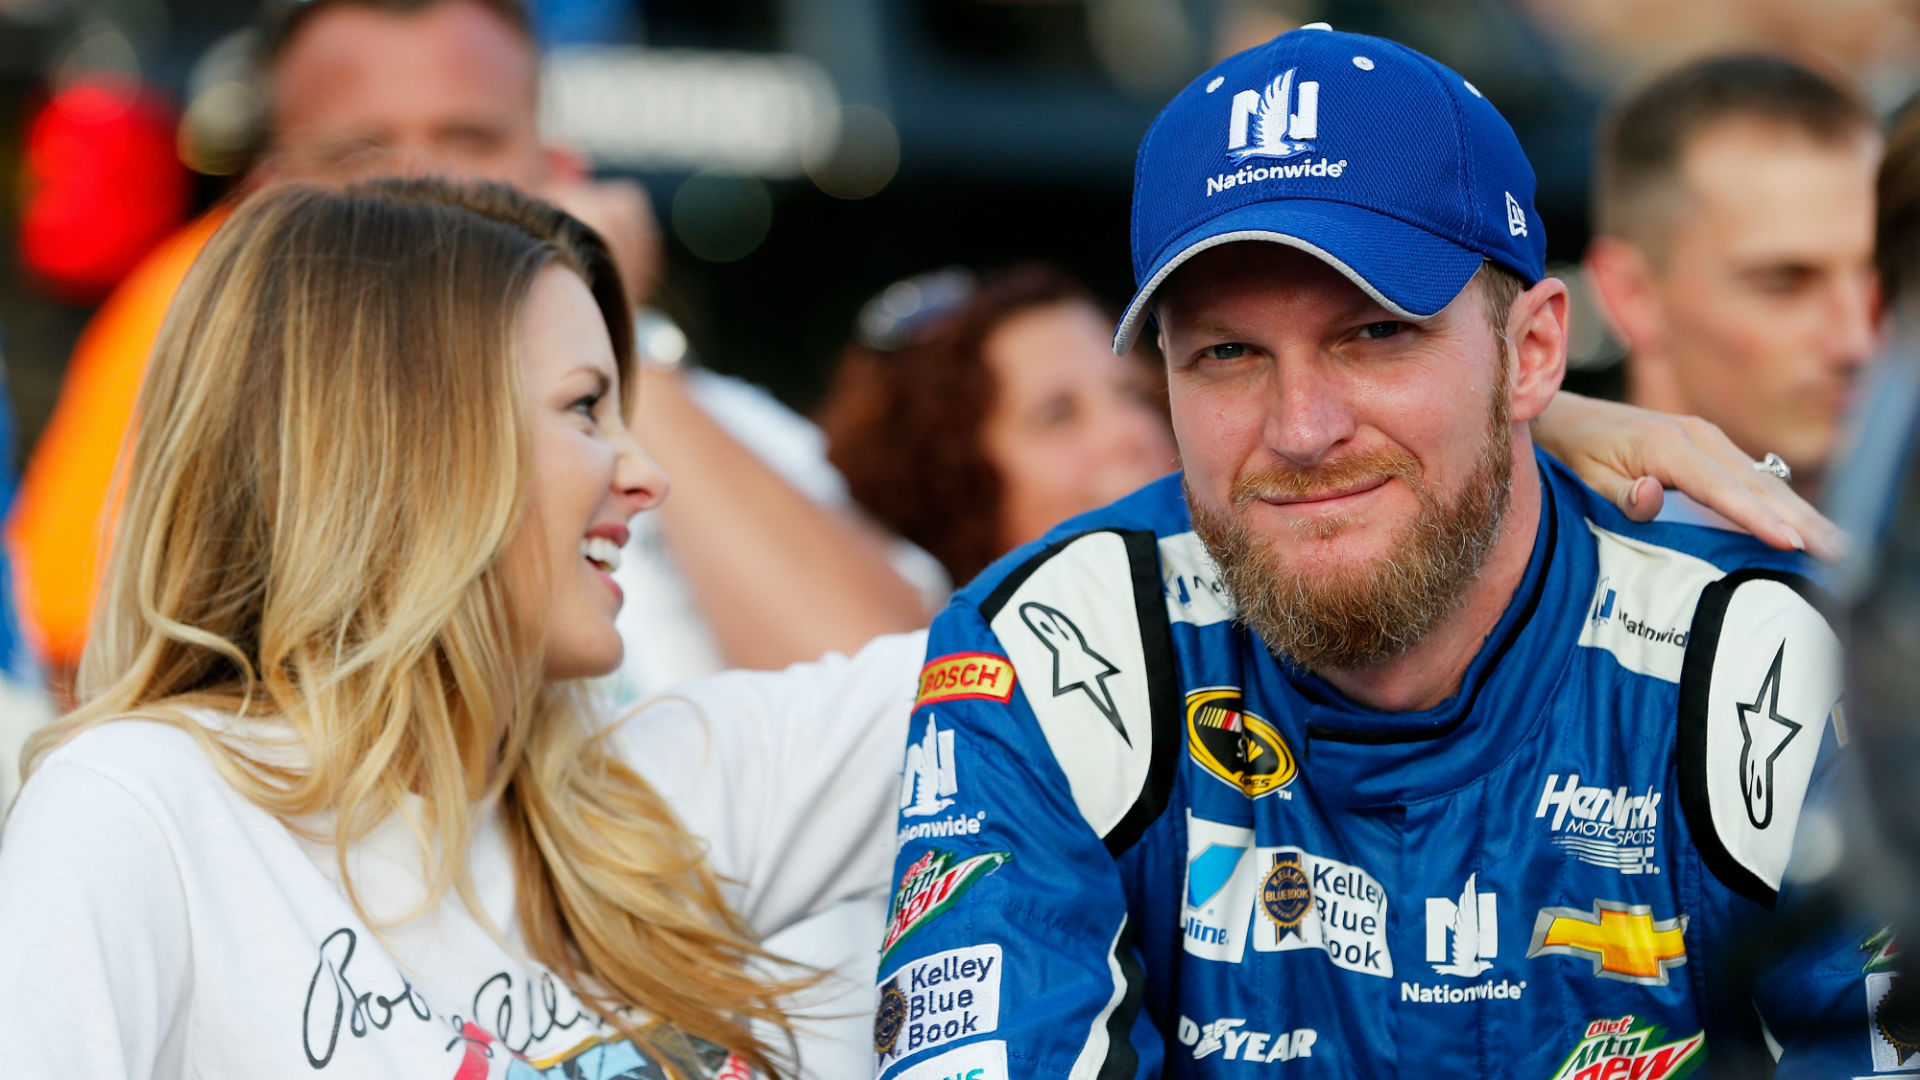 DaleJr.com | Official Website of NASCAR driver Dale Earnhardt Jr.